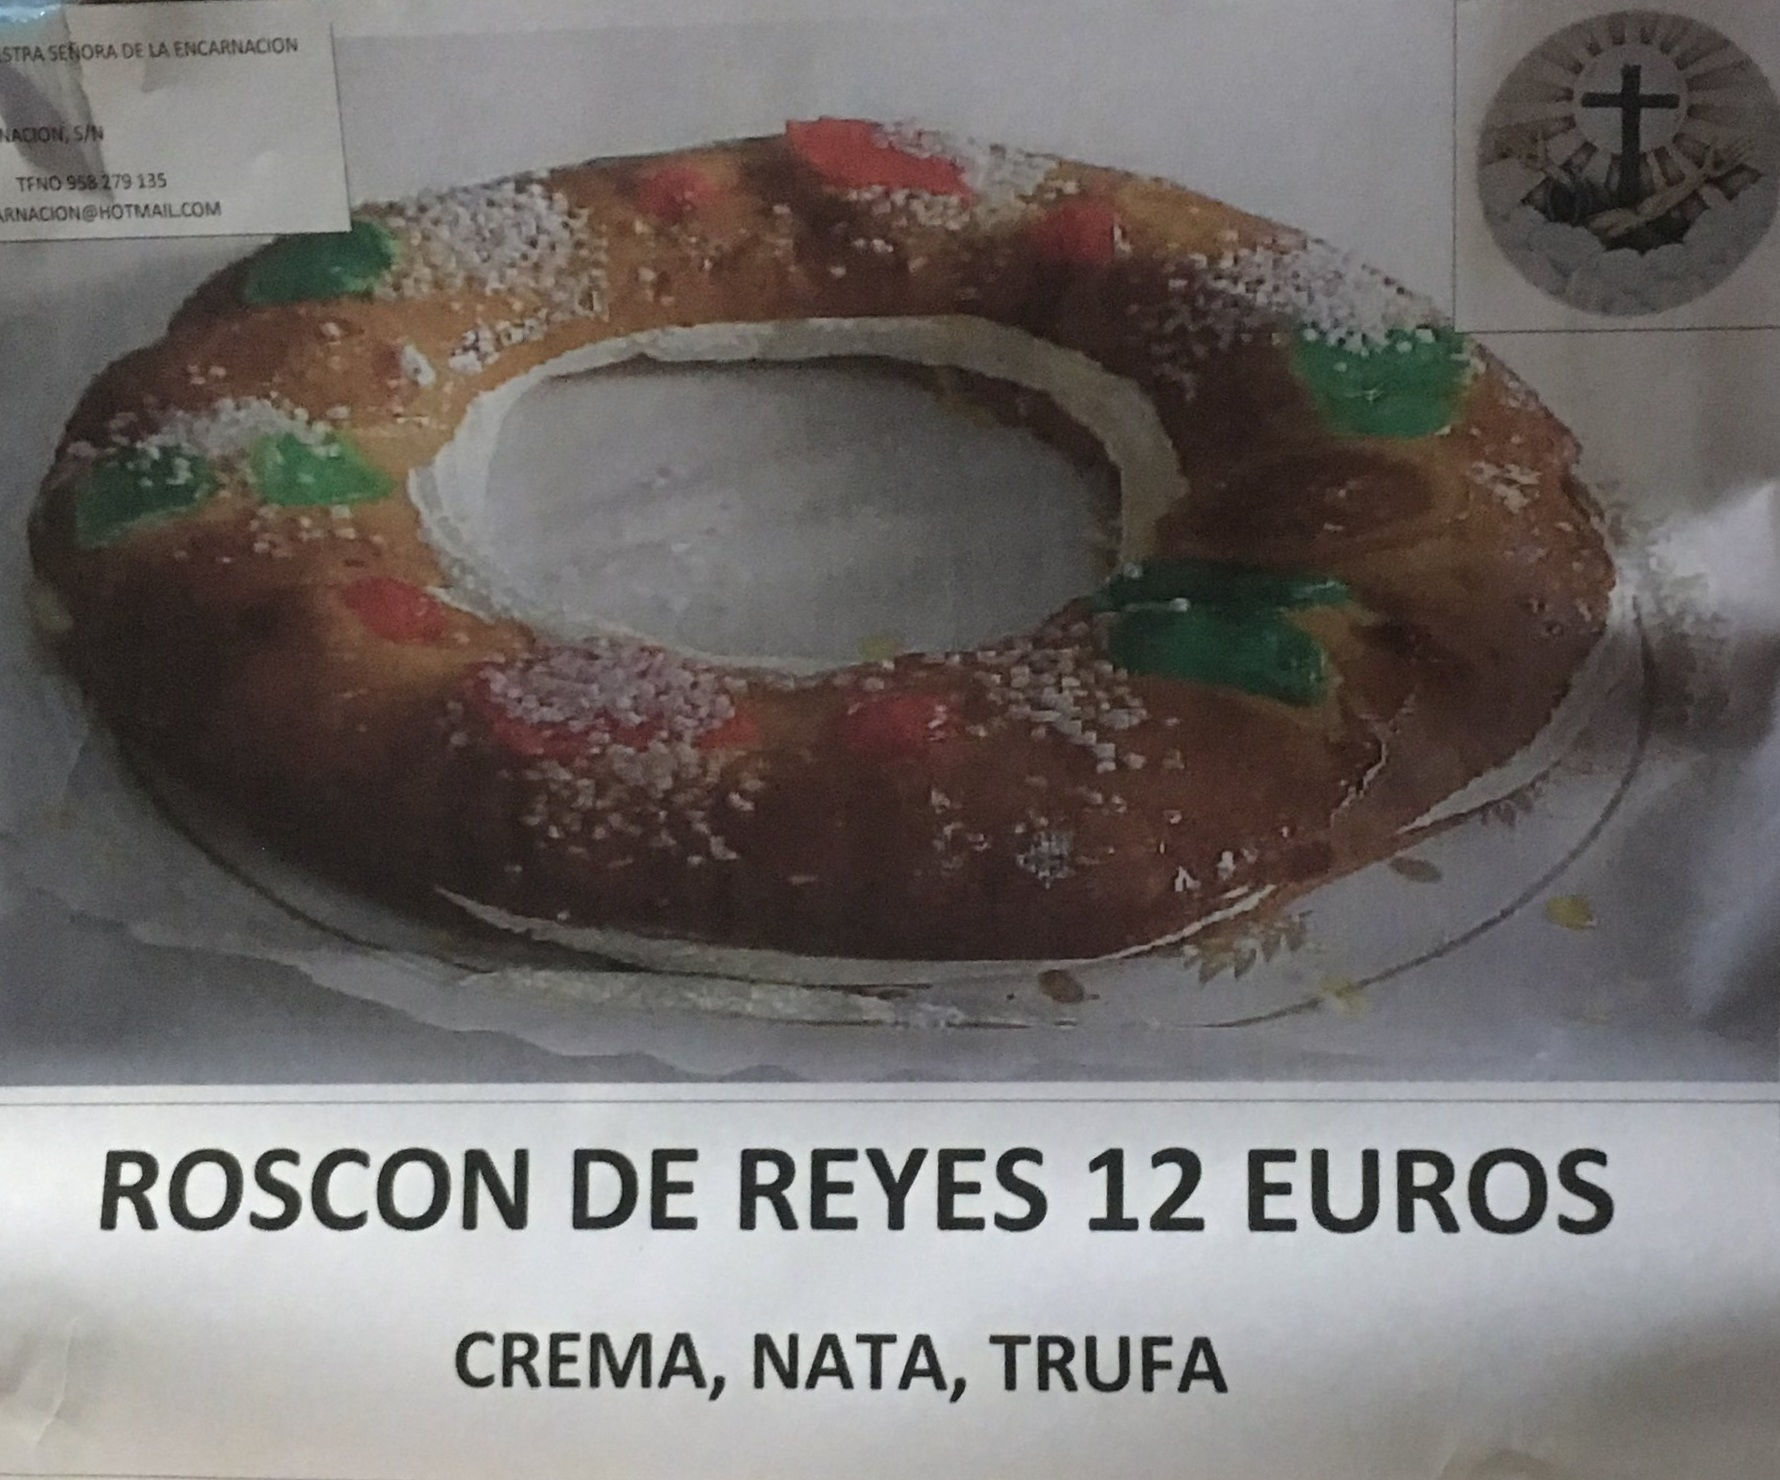 Advertisement for  roscones  at a local convent.